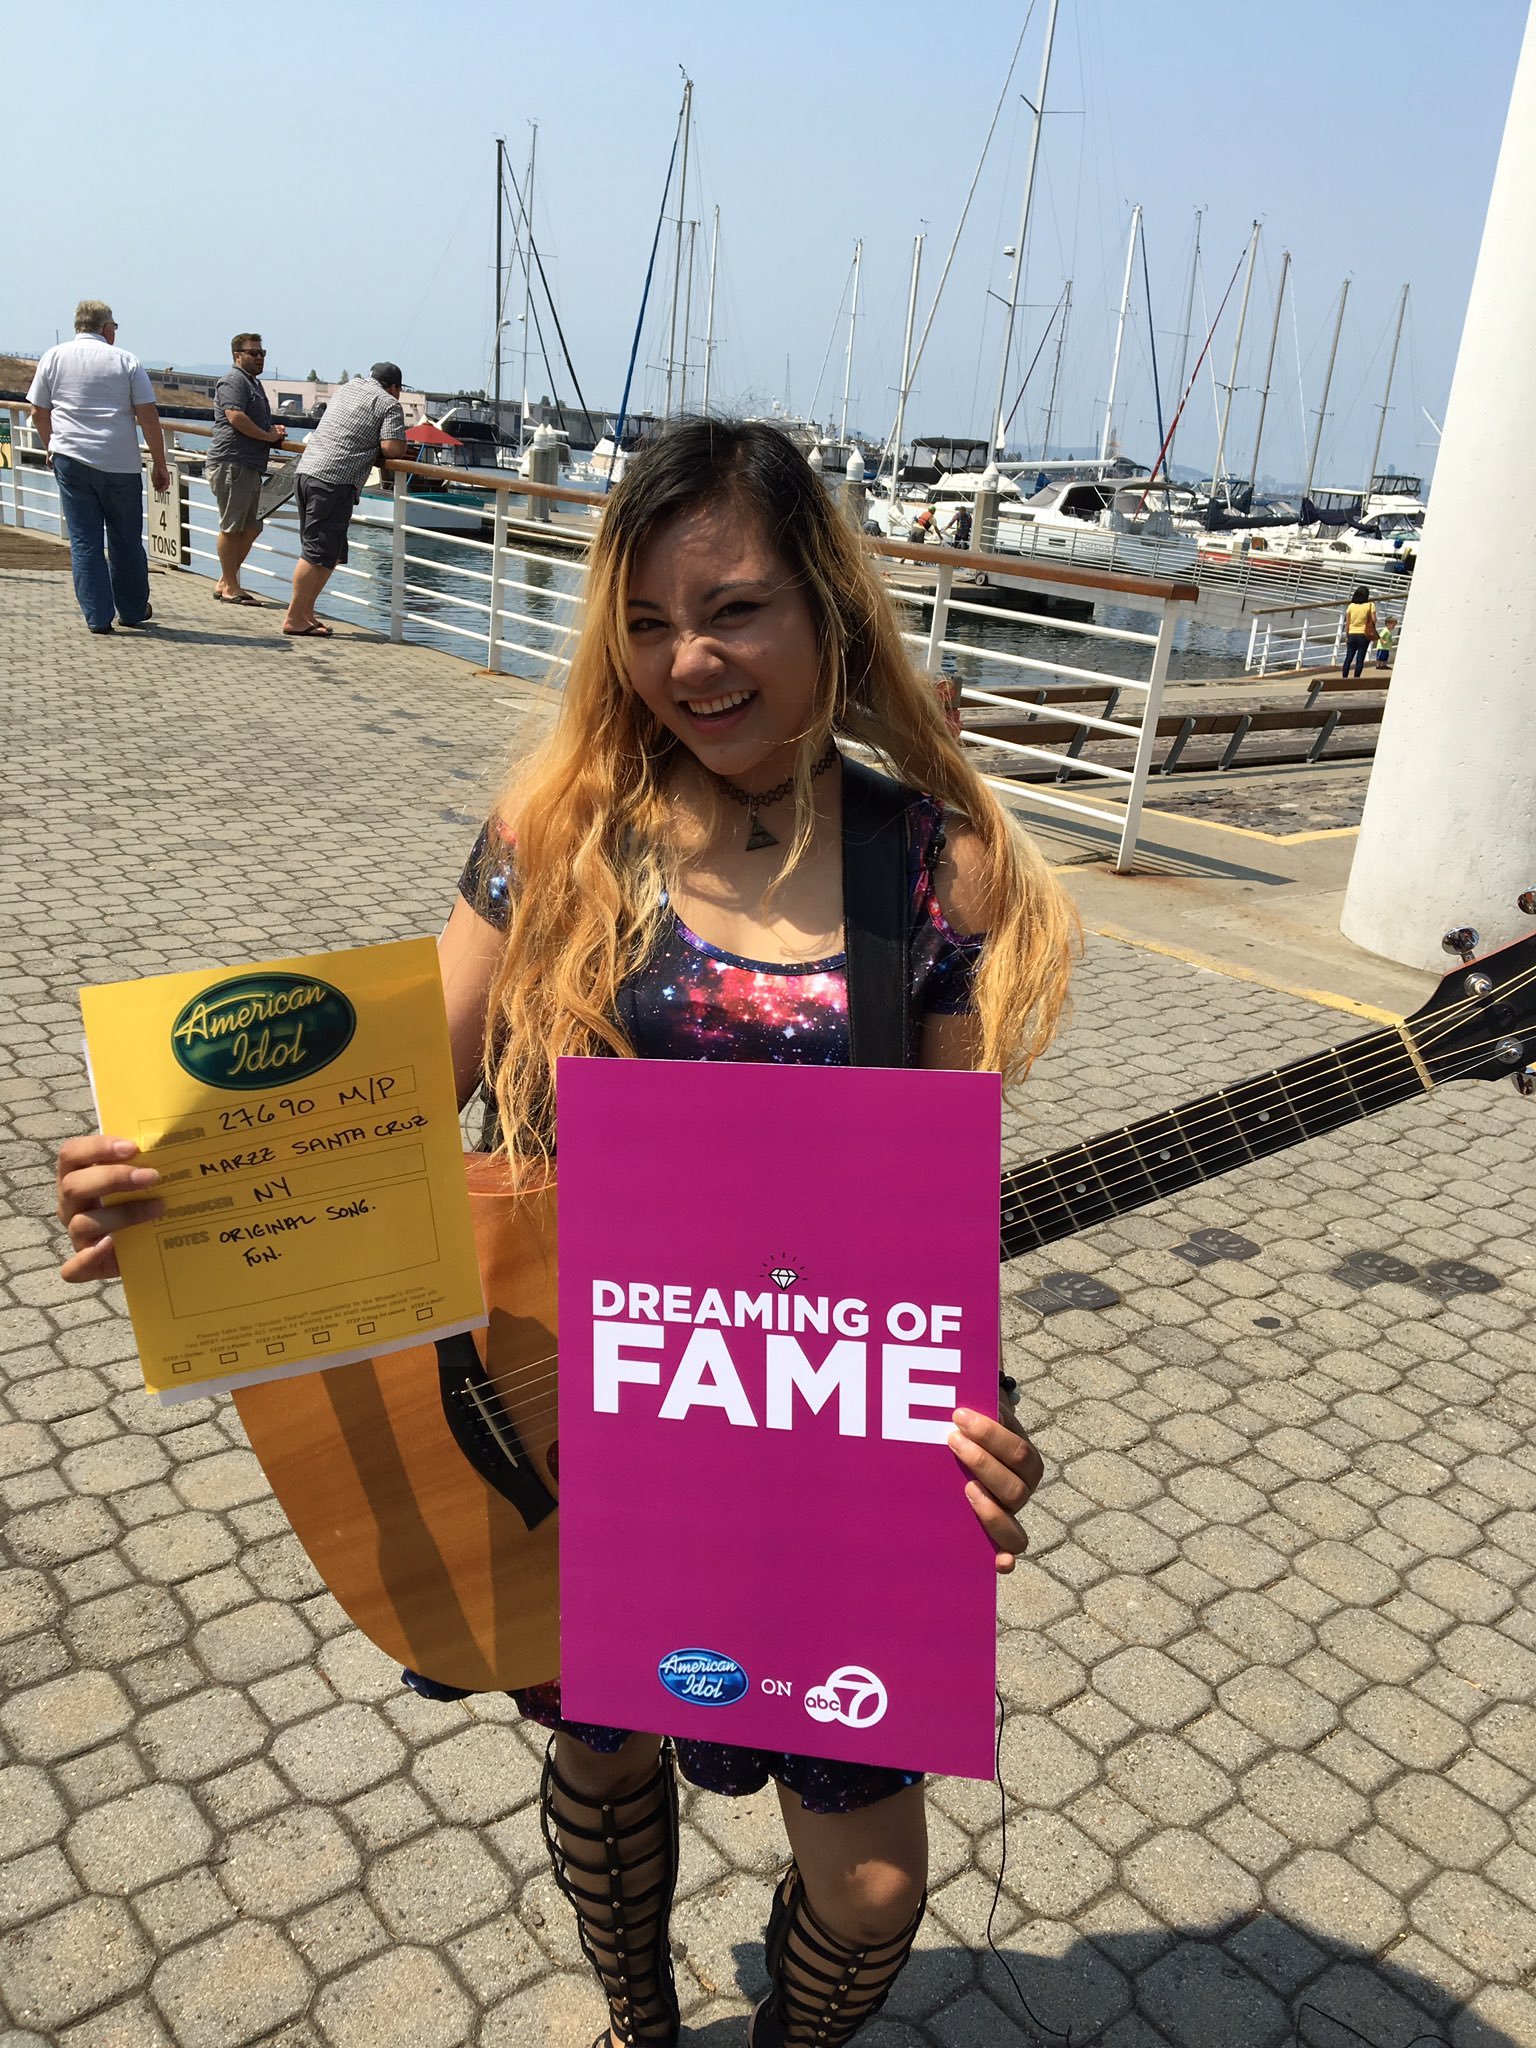 <div class='meta'><div class='origin-logo' data-origin='none'></div><span class='caption-text' data-credit='KGO-TV'>An &#34;American Idol&#34; hopeful holds up her golden ticket after passing a round of auditions in Oakland, Calif. on Sunday, Aug. 20, 2017.</span></div>